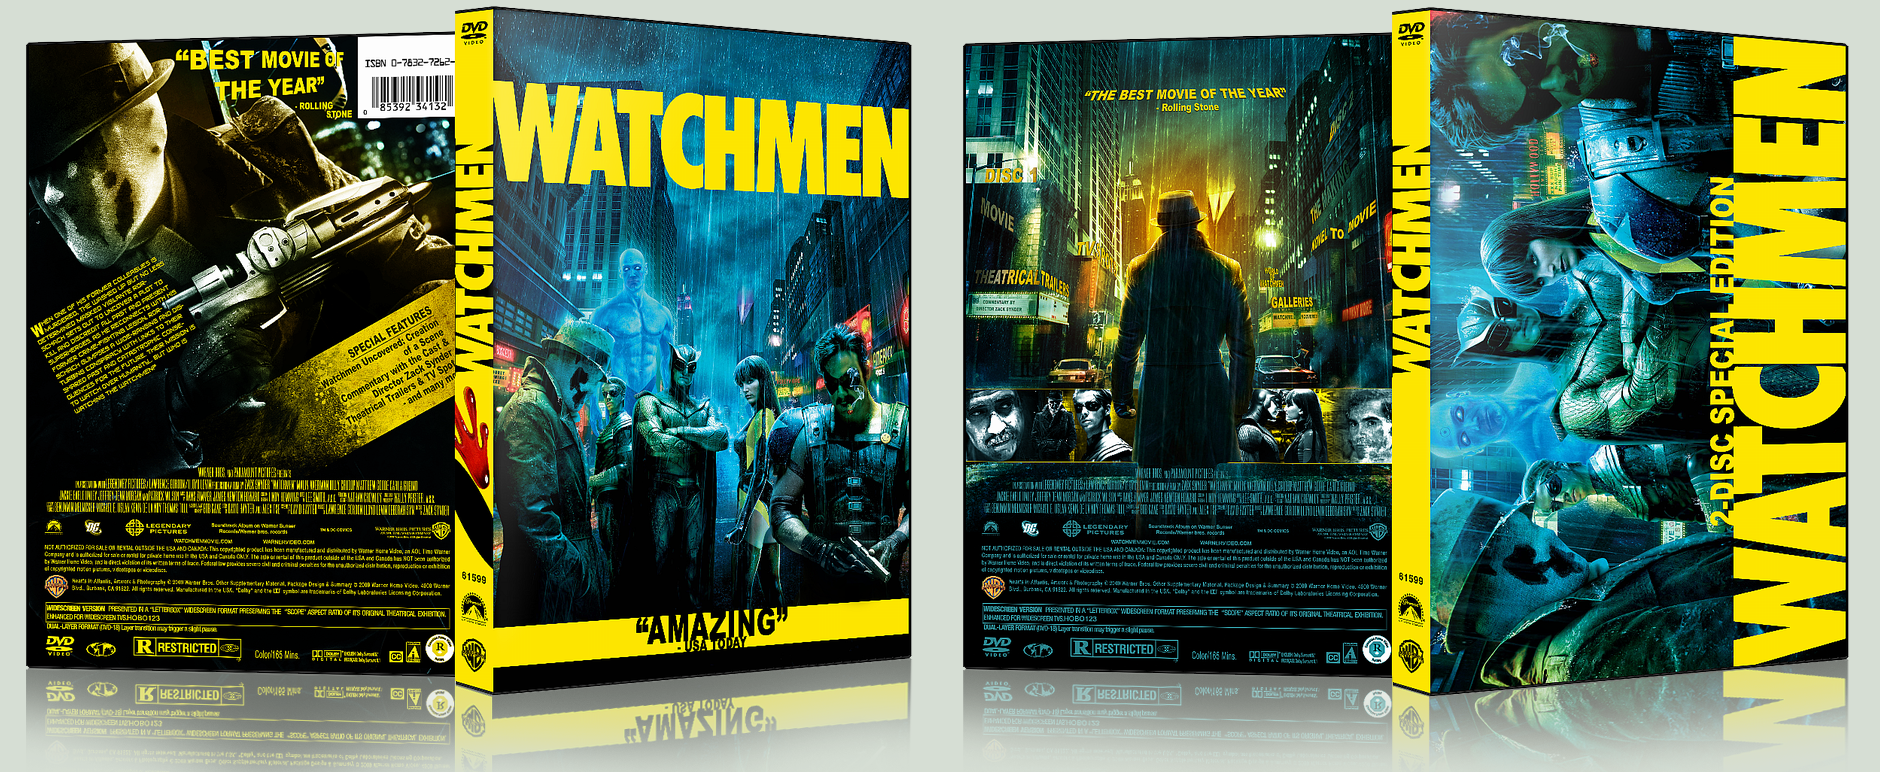 Watchmen DVD Covers by hobo95 on DeviantArt